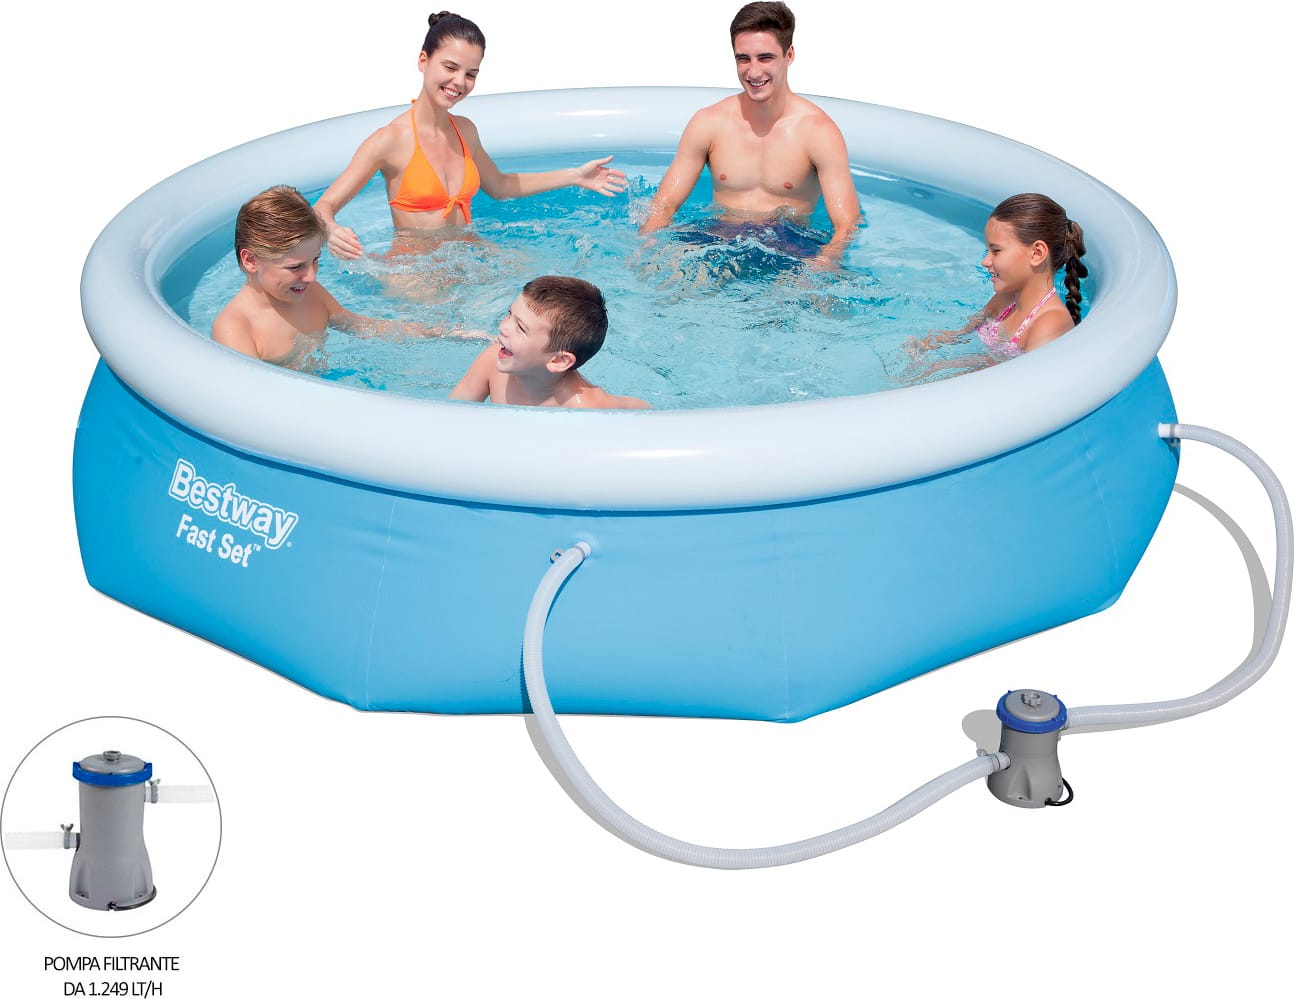 Piscina fuori terra bestway autoportante rotonda 305x76 h for Piscine fuori terra best way